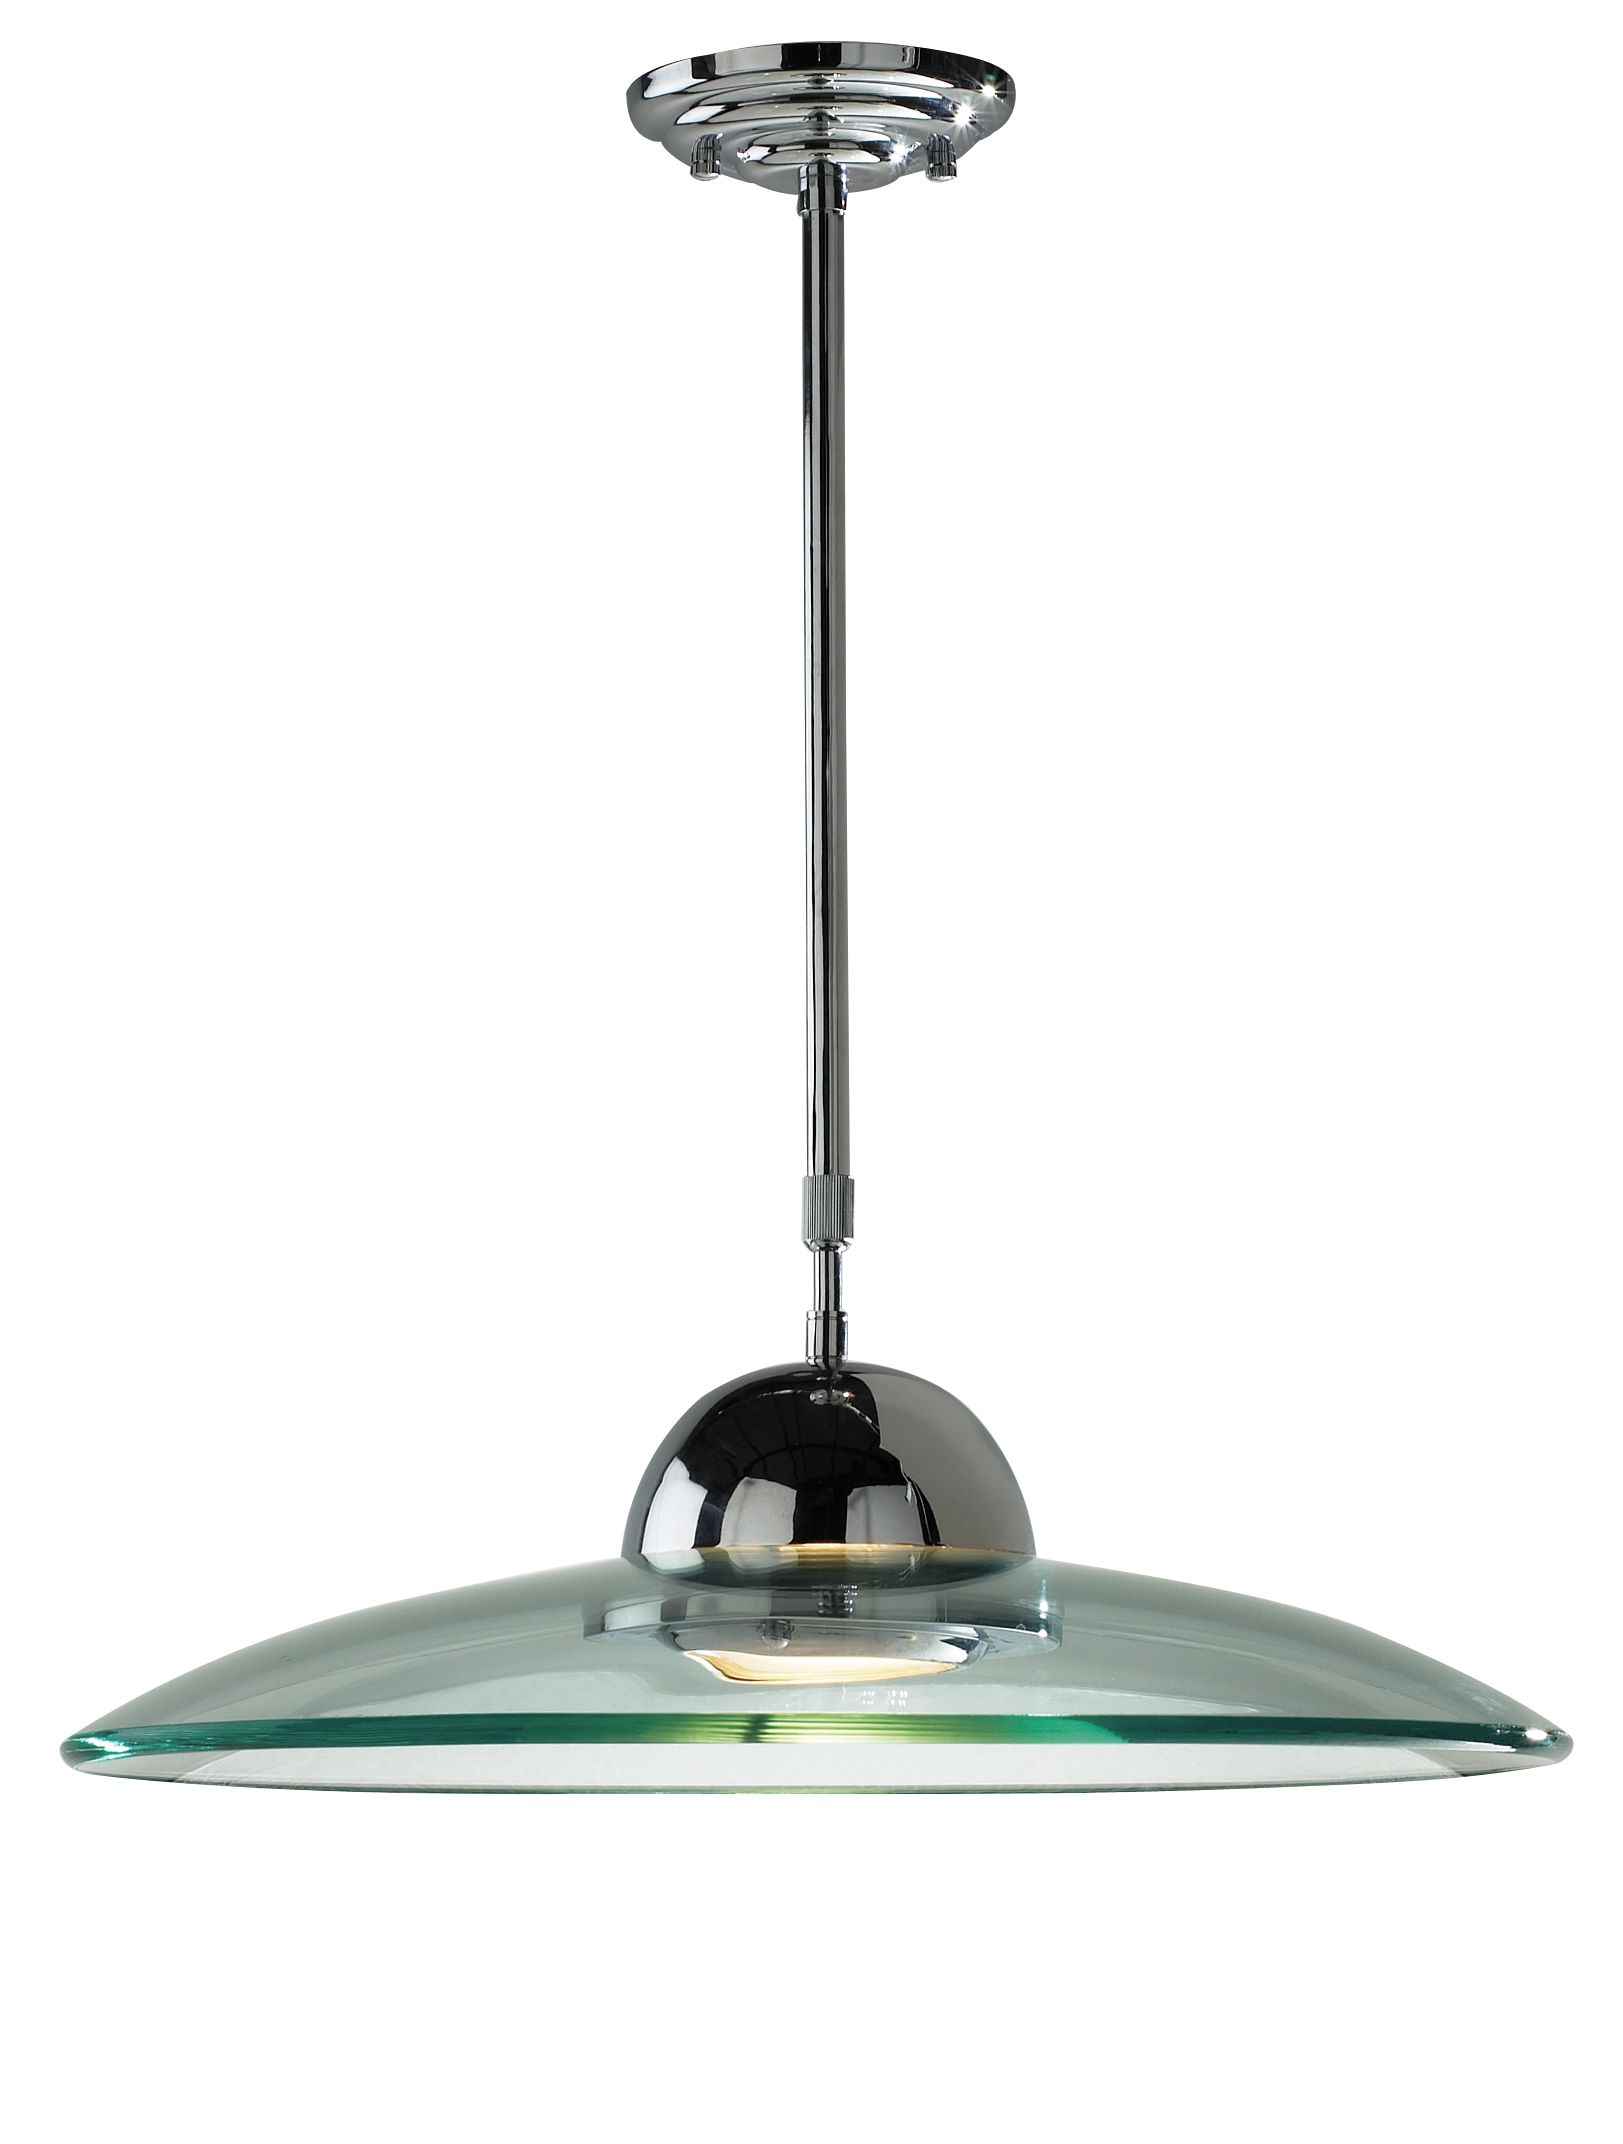 Hemisphere ceiling pendant by House of Fraser